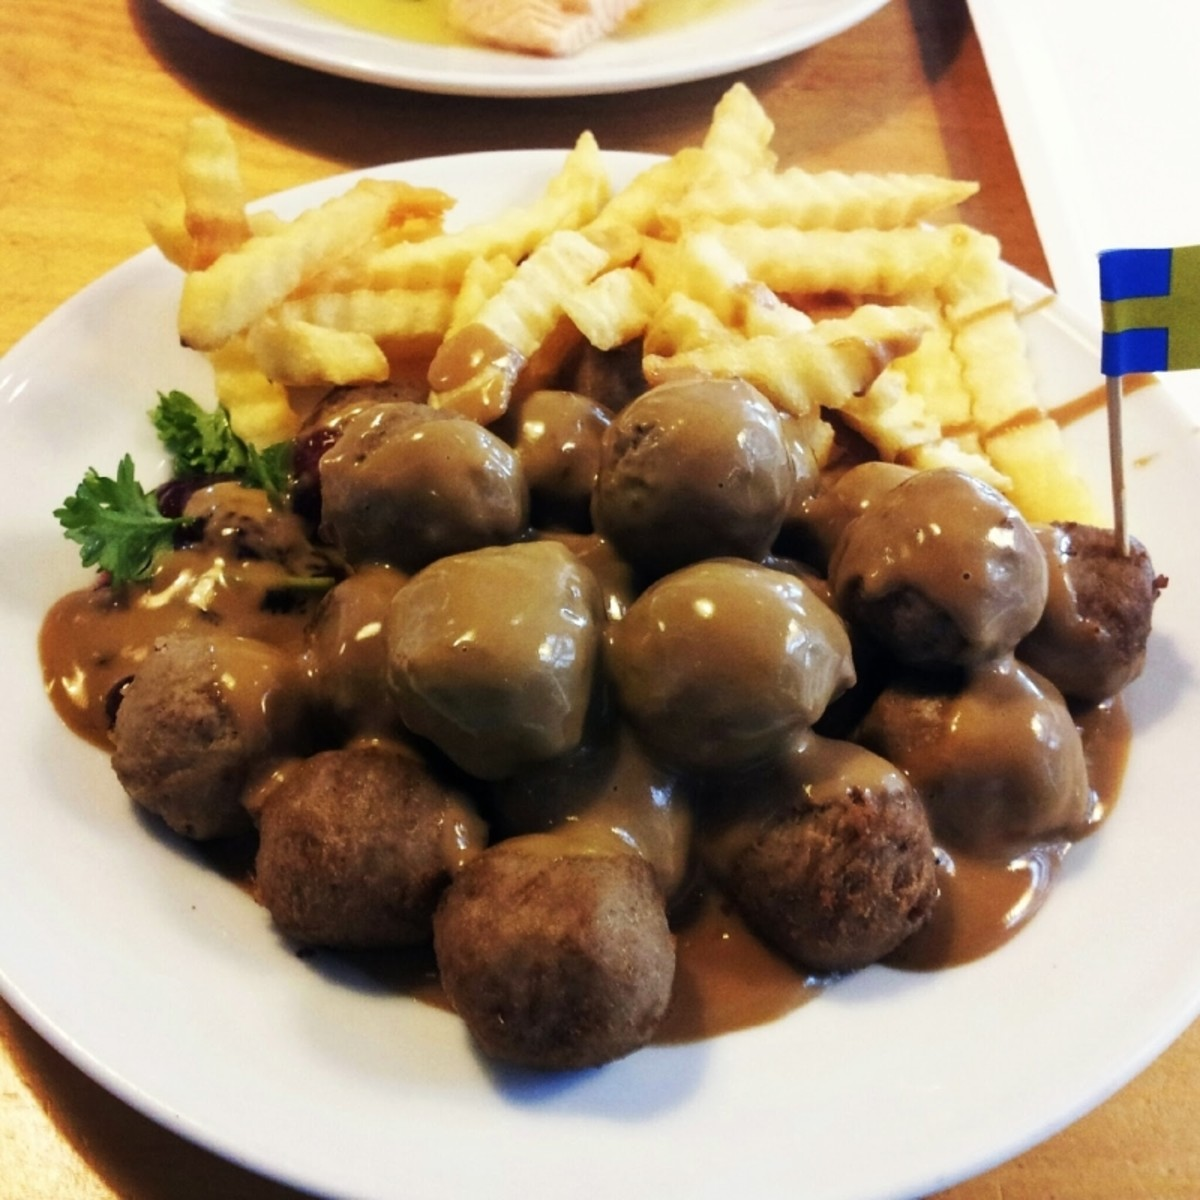 Swedish meatballs served with French Fries